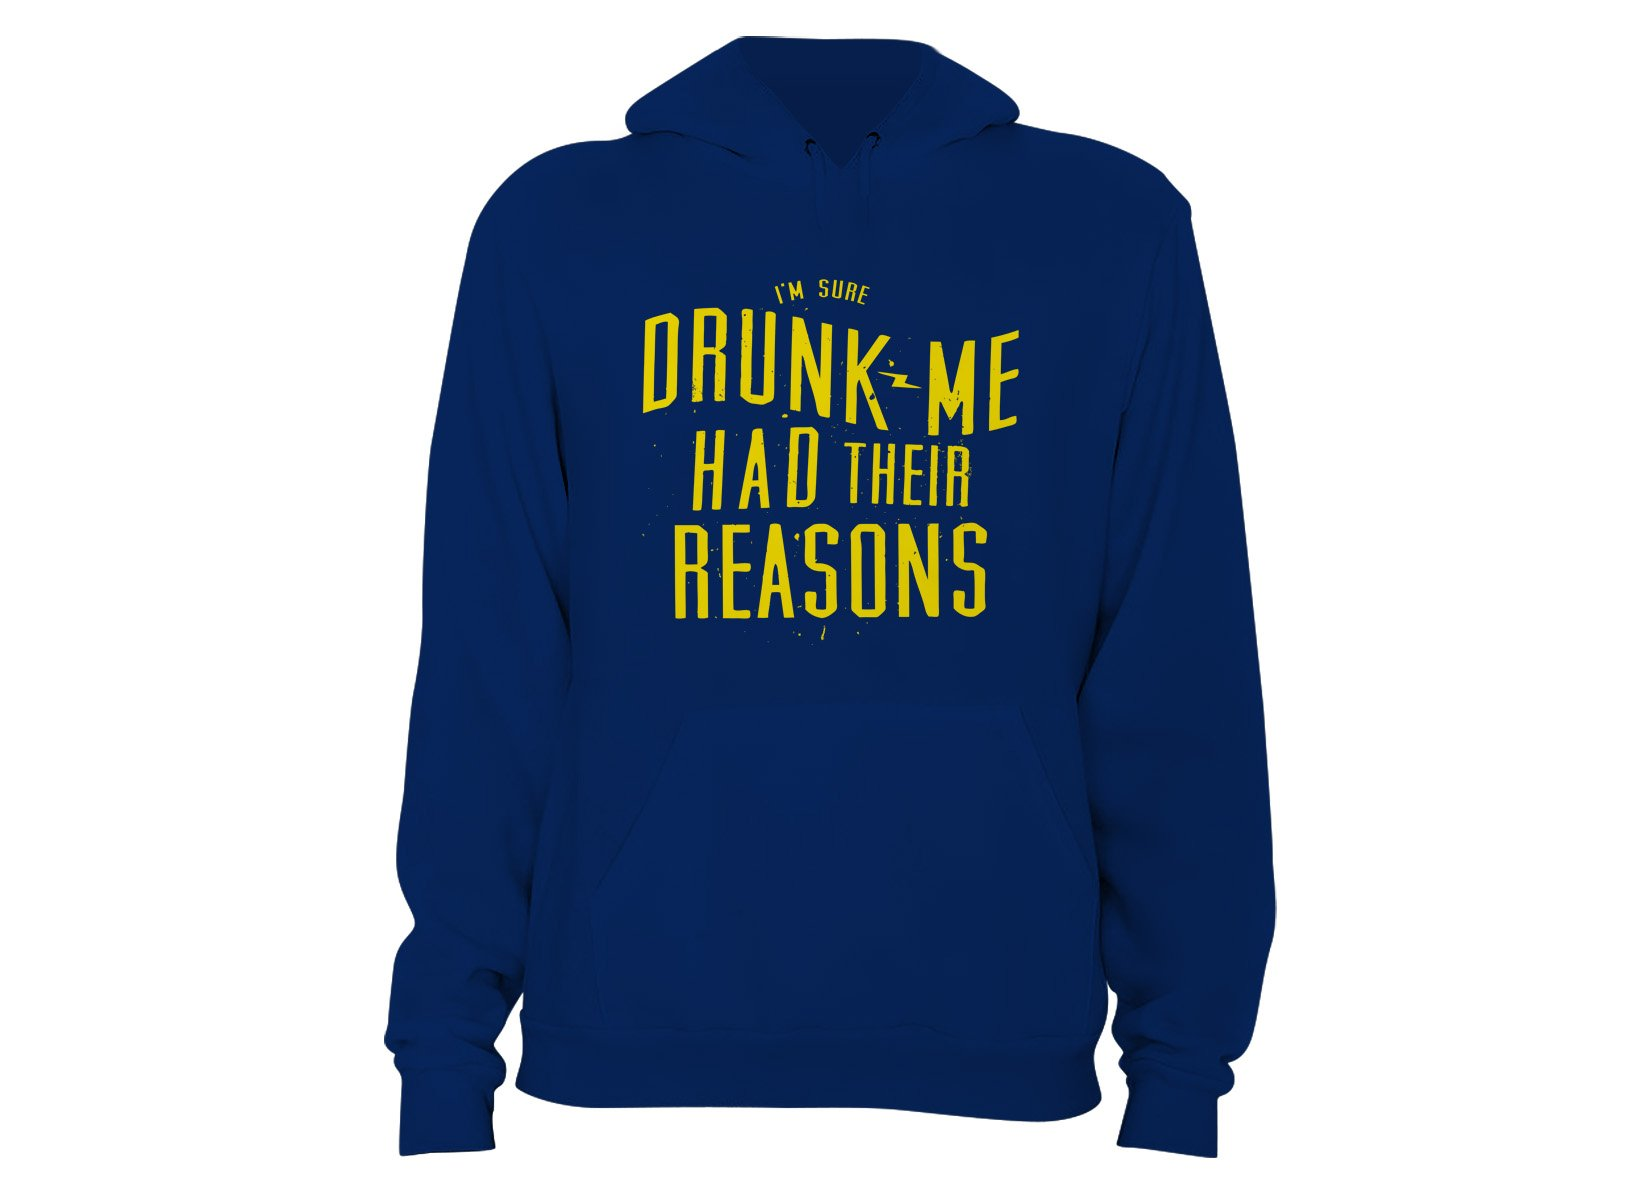 Drunk Me Had Their Reasons on Hoodie